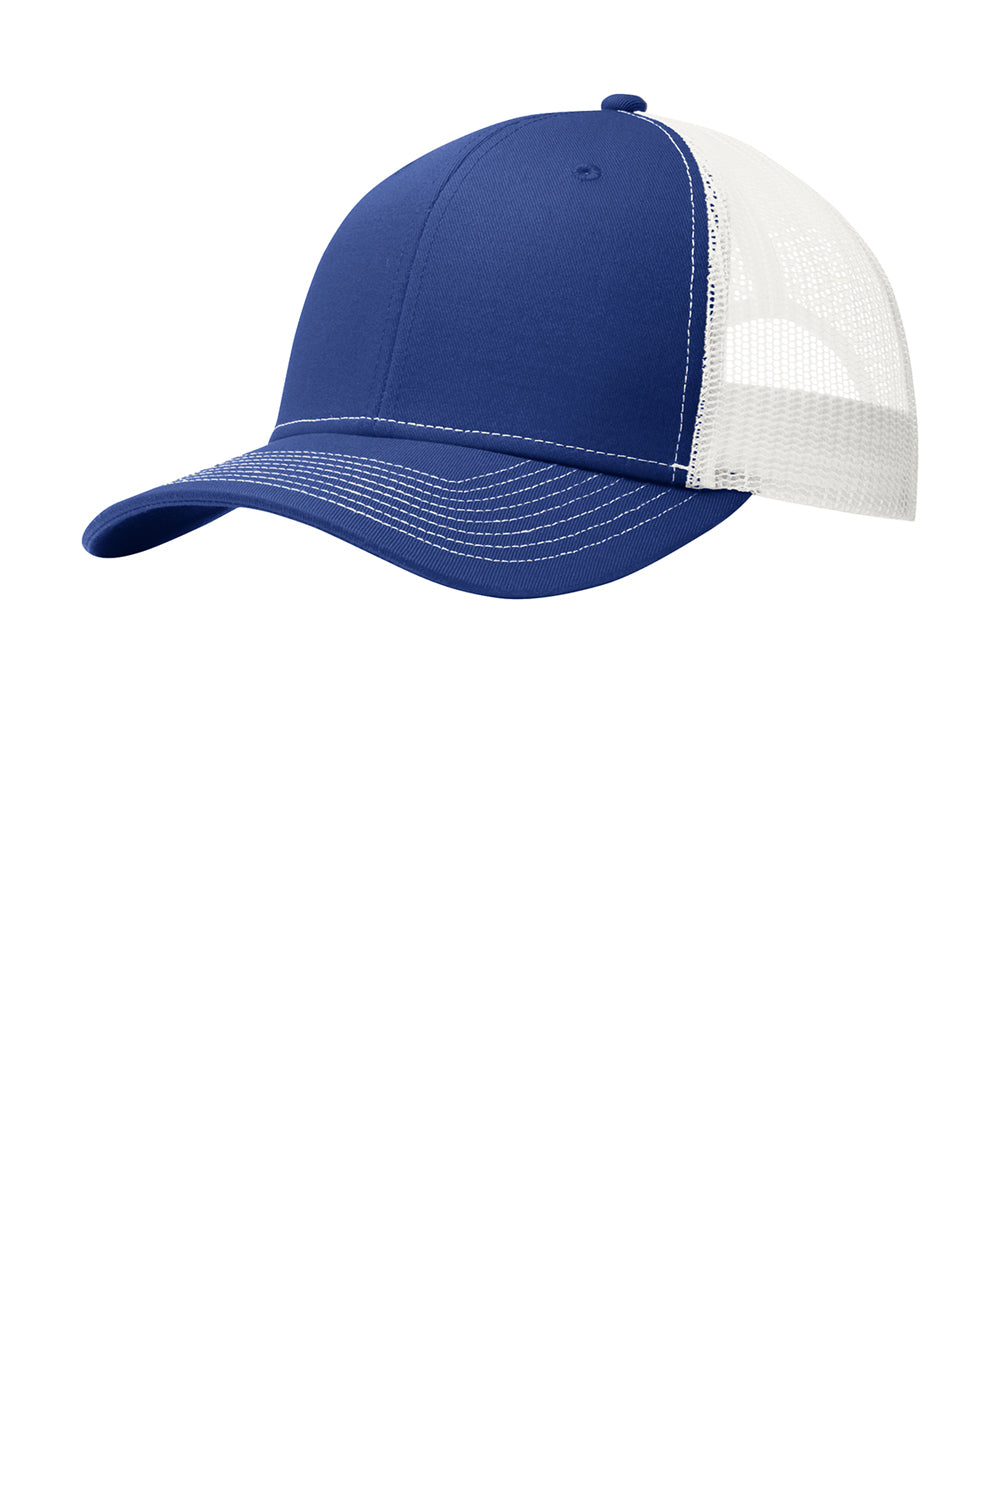 Port Authority C112 Mens Adjustable Trucker Hat Royal Blue/White Front